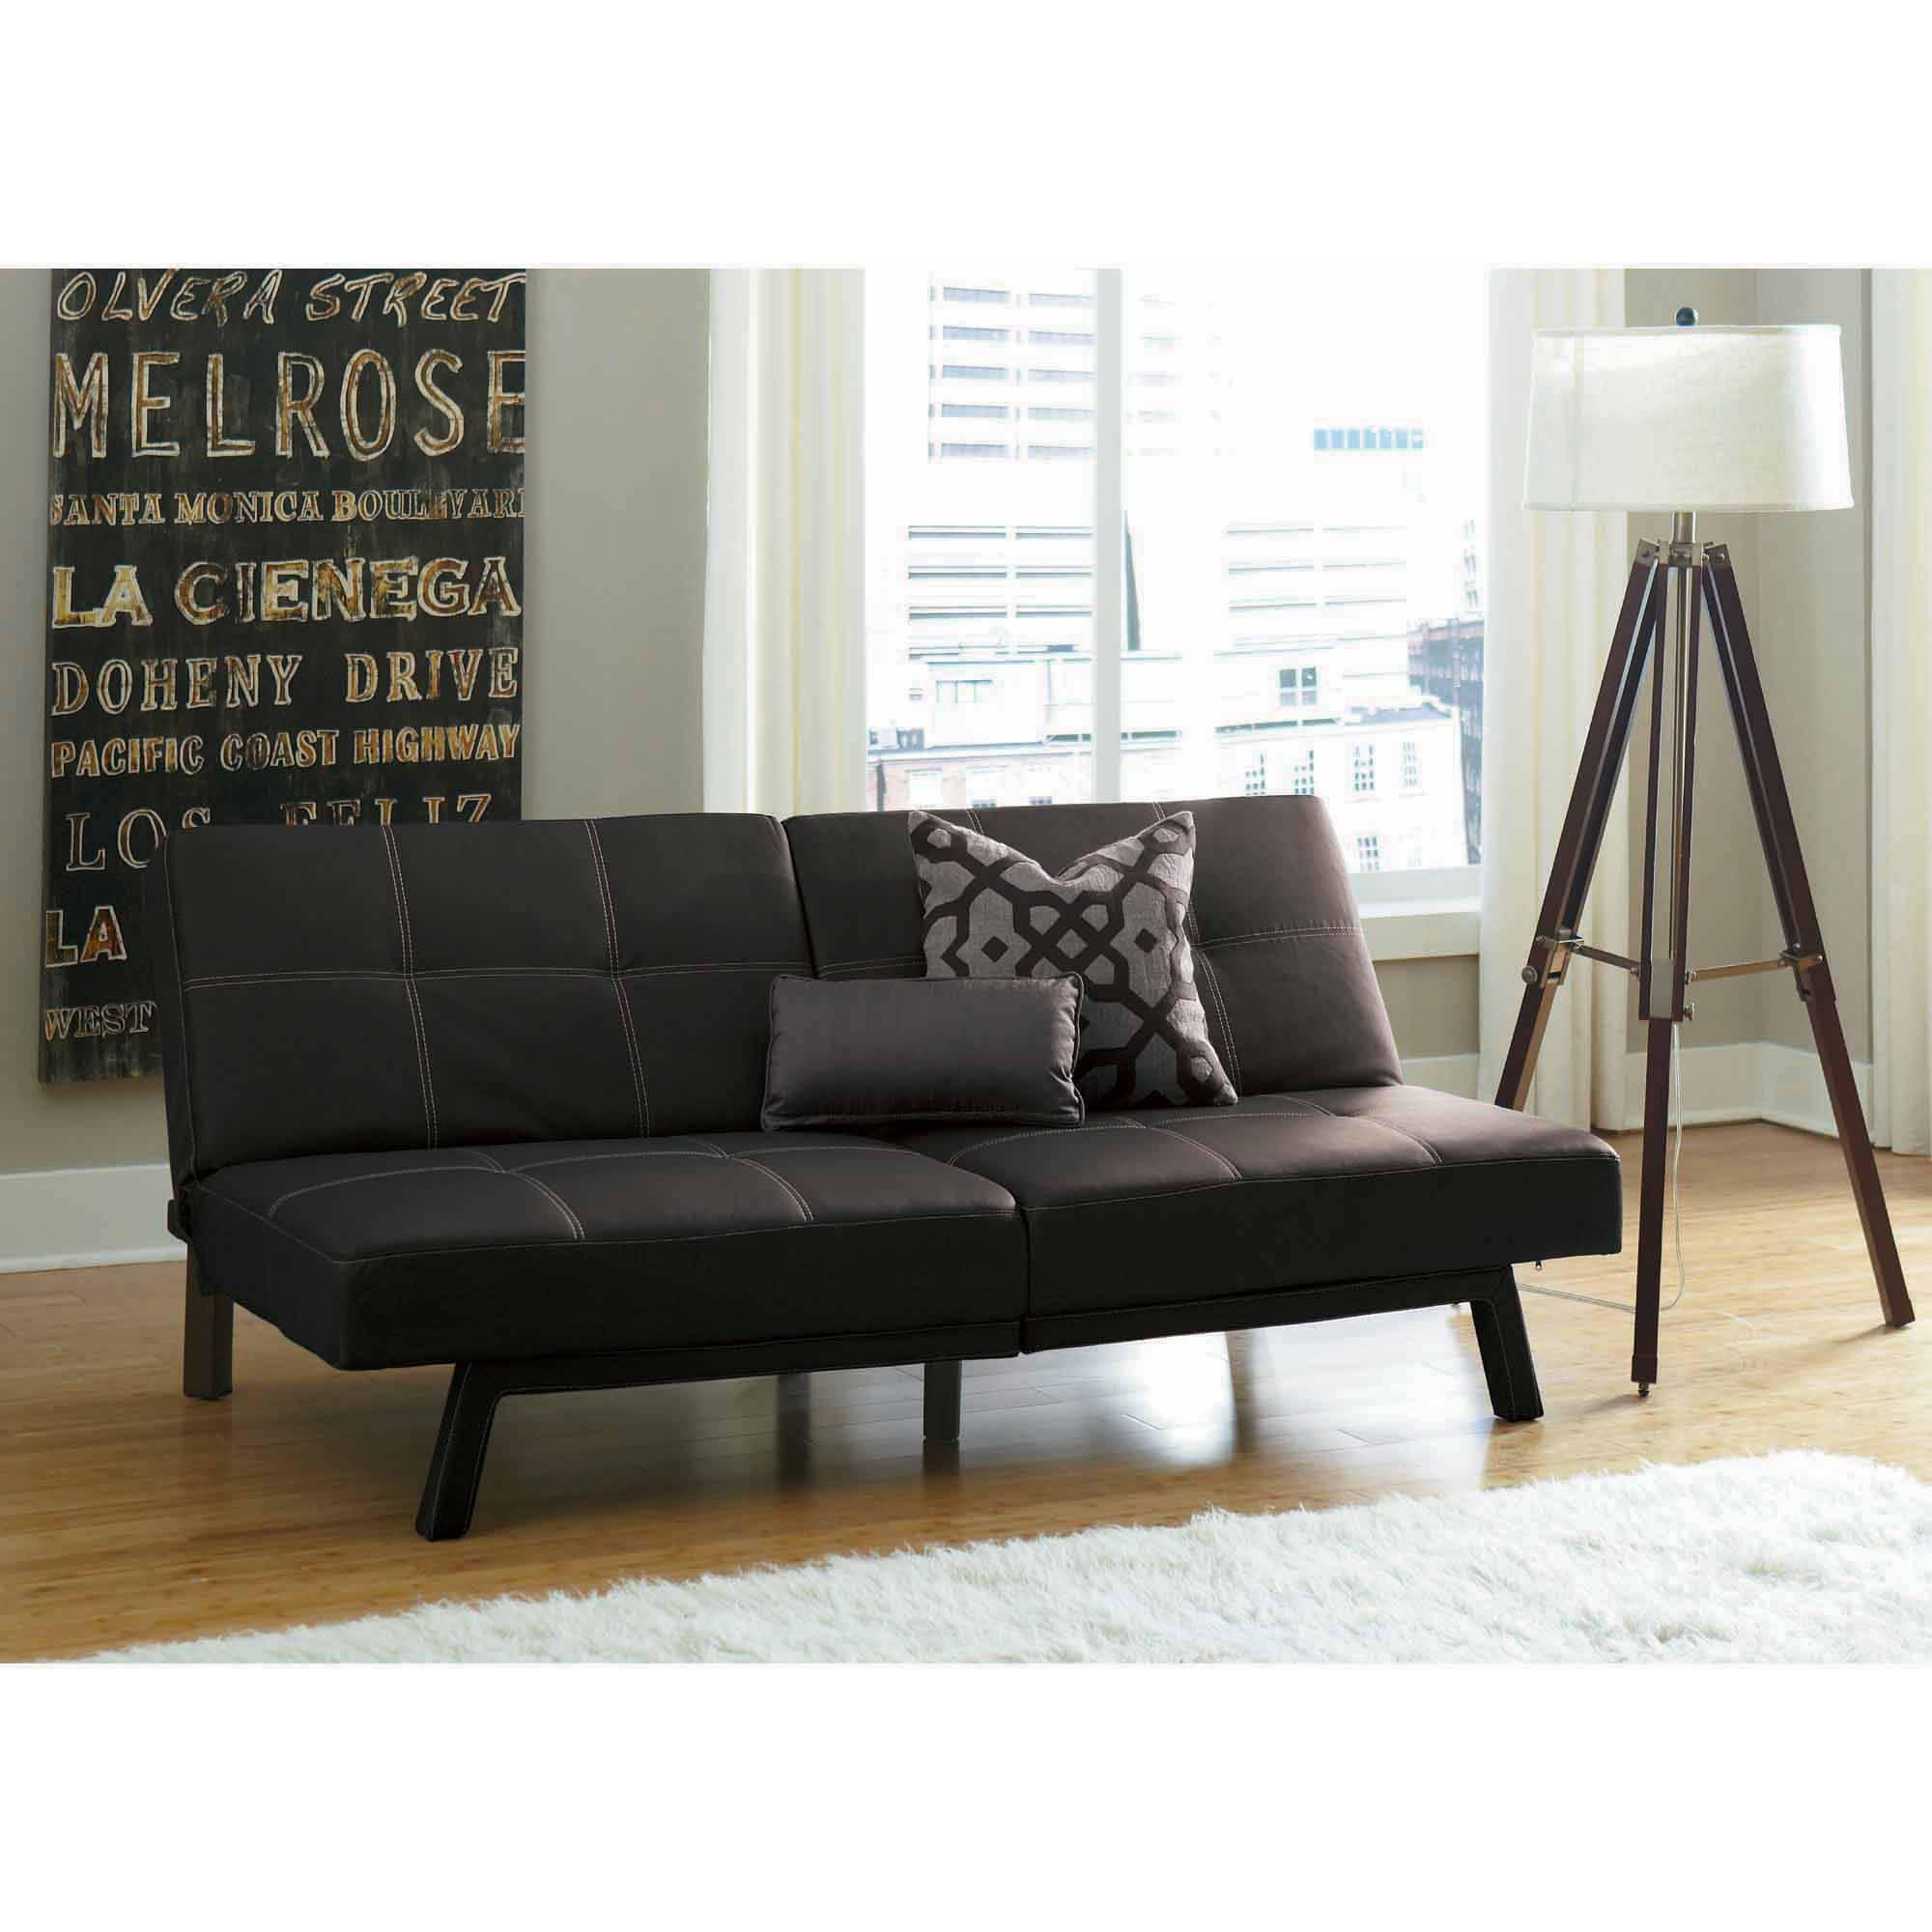 Delaney Split Back Futon Sofa Bed, Multiple Colors – Walmart Intended For Small Black Futon Sofa Beds (Image 3 of 20)